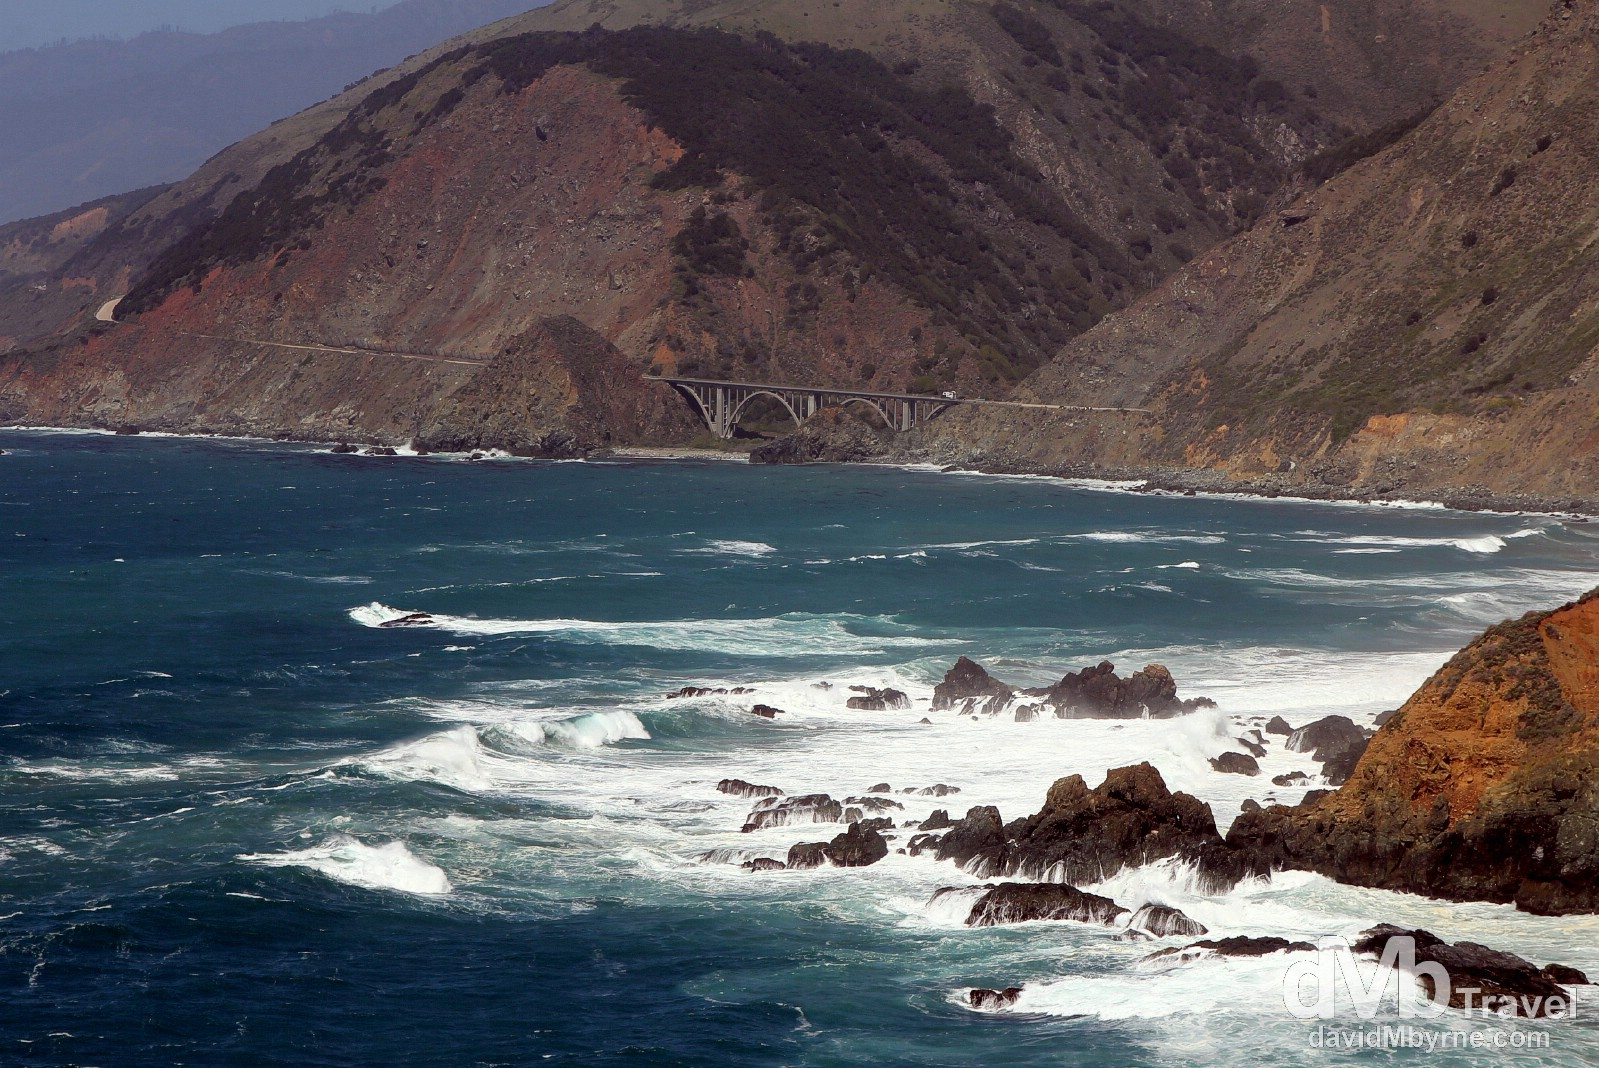 A section of the State Highway 1/Pacific Coast Highway, California, USA. April 8th 2013.